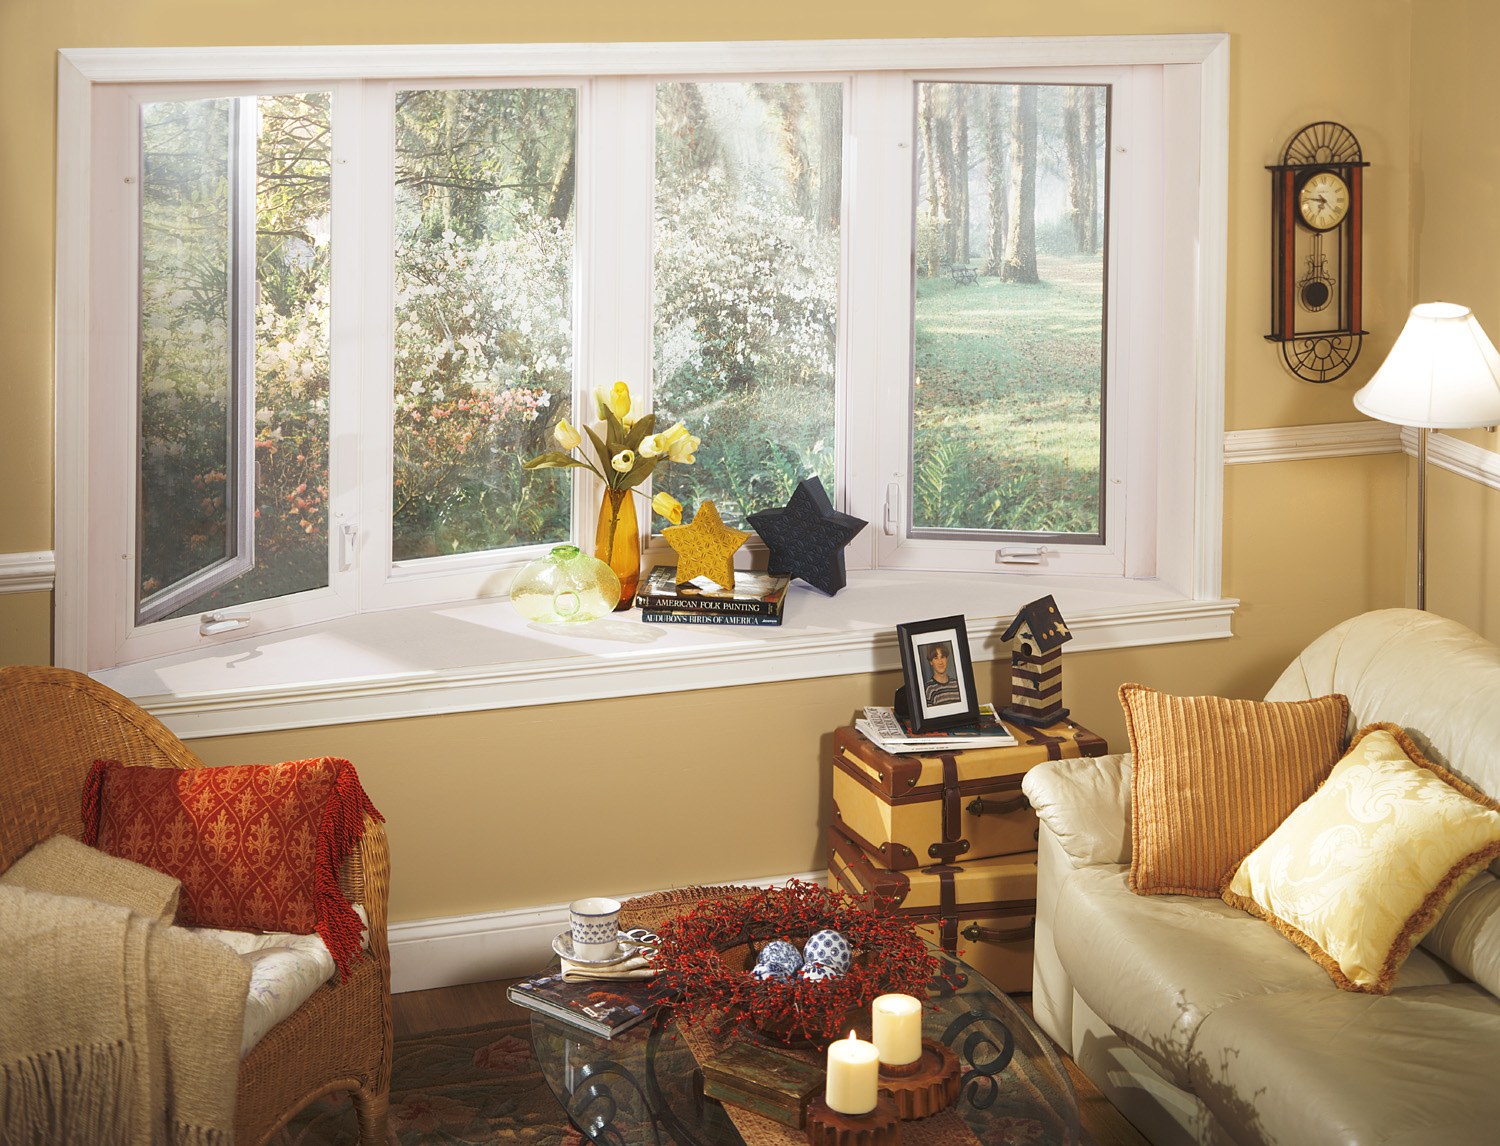 Decorating ideas to window treatments for casement windows How to decorate windows